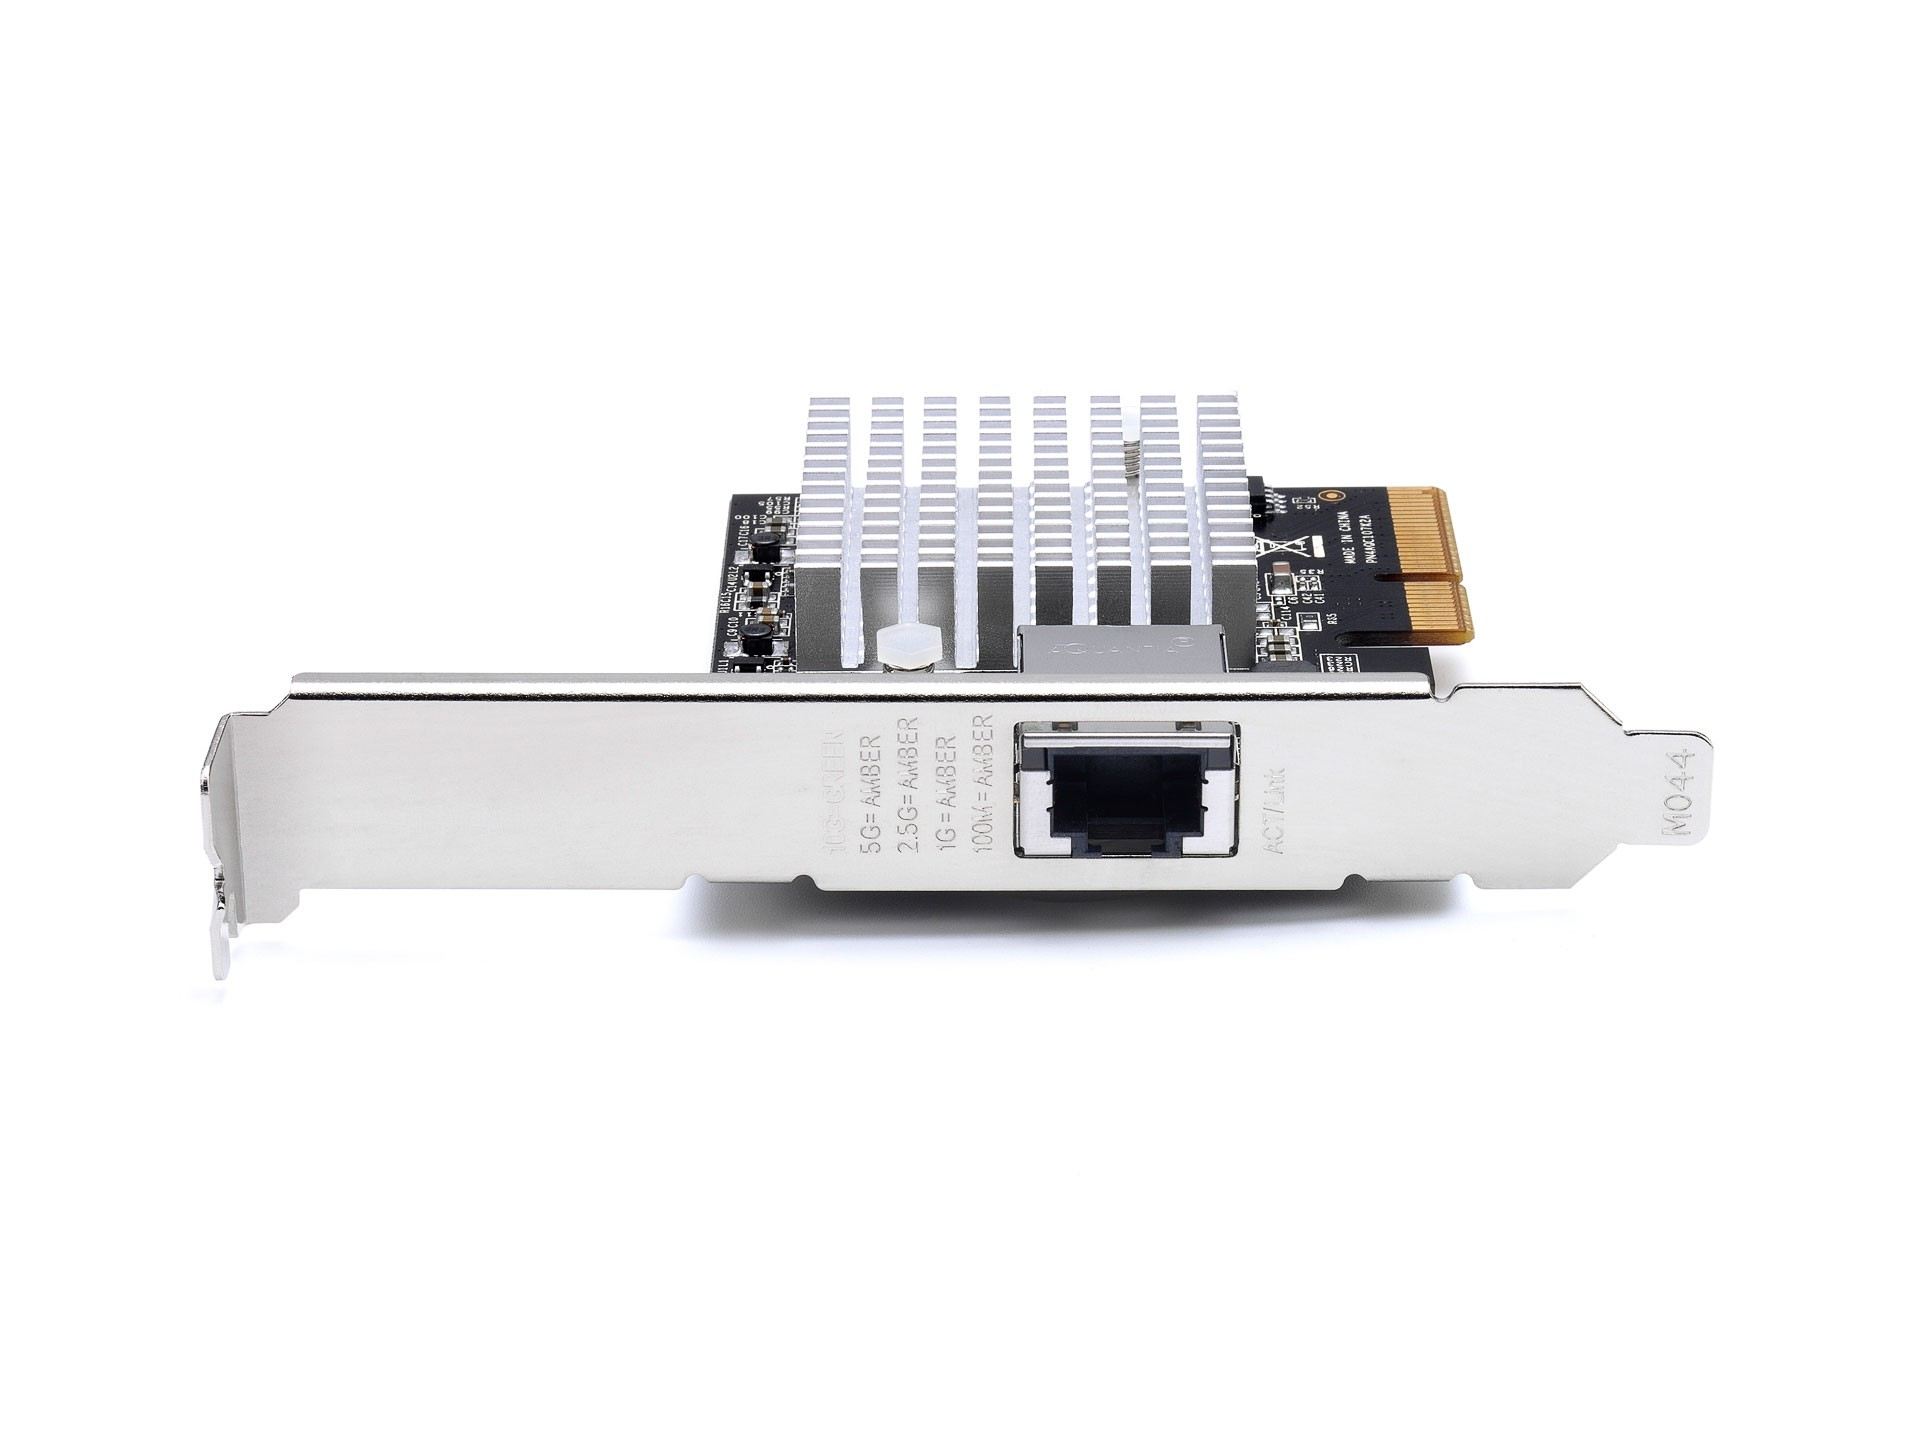 AKiTiO 5-Speed 10G/NBASE-T PCIe Network Card, AKTPCIE10GB